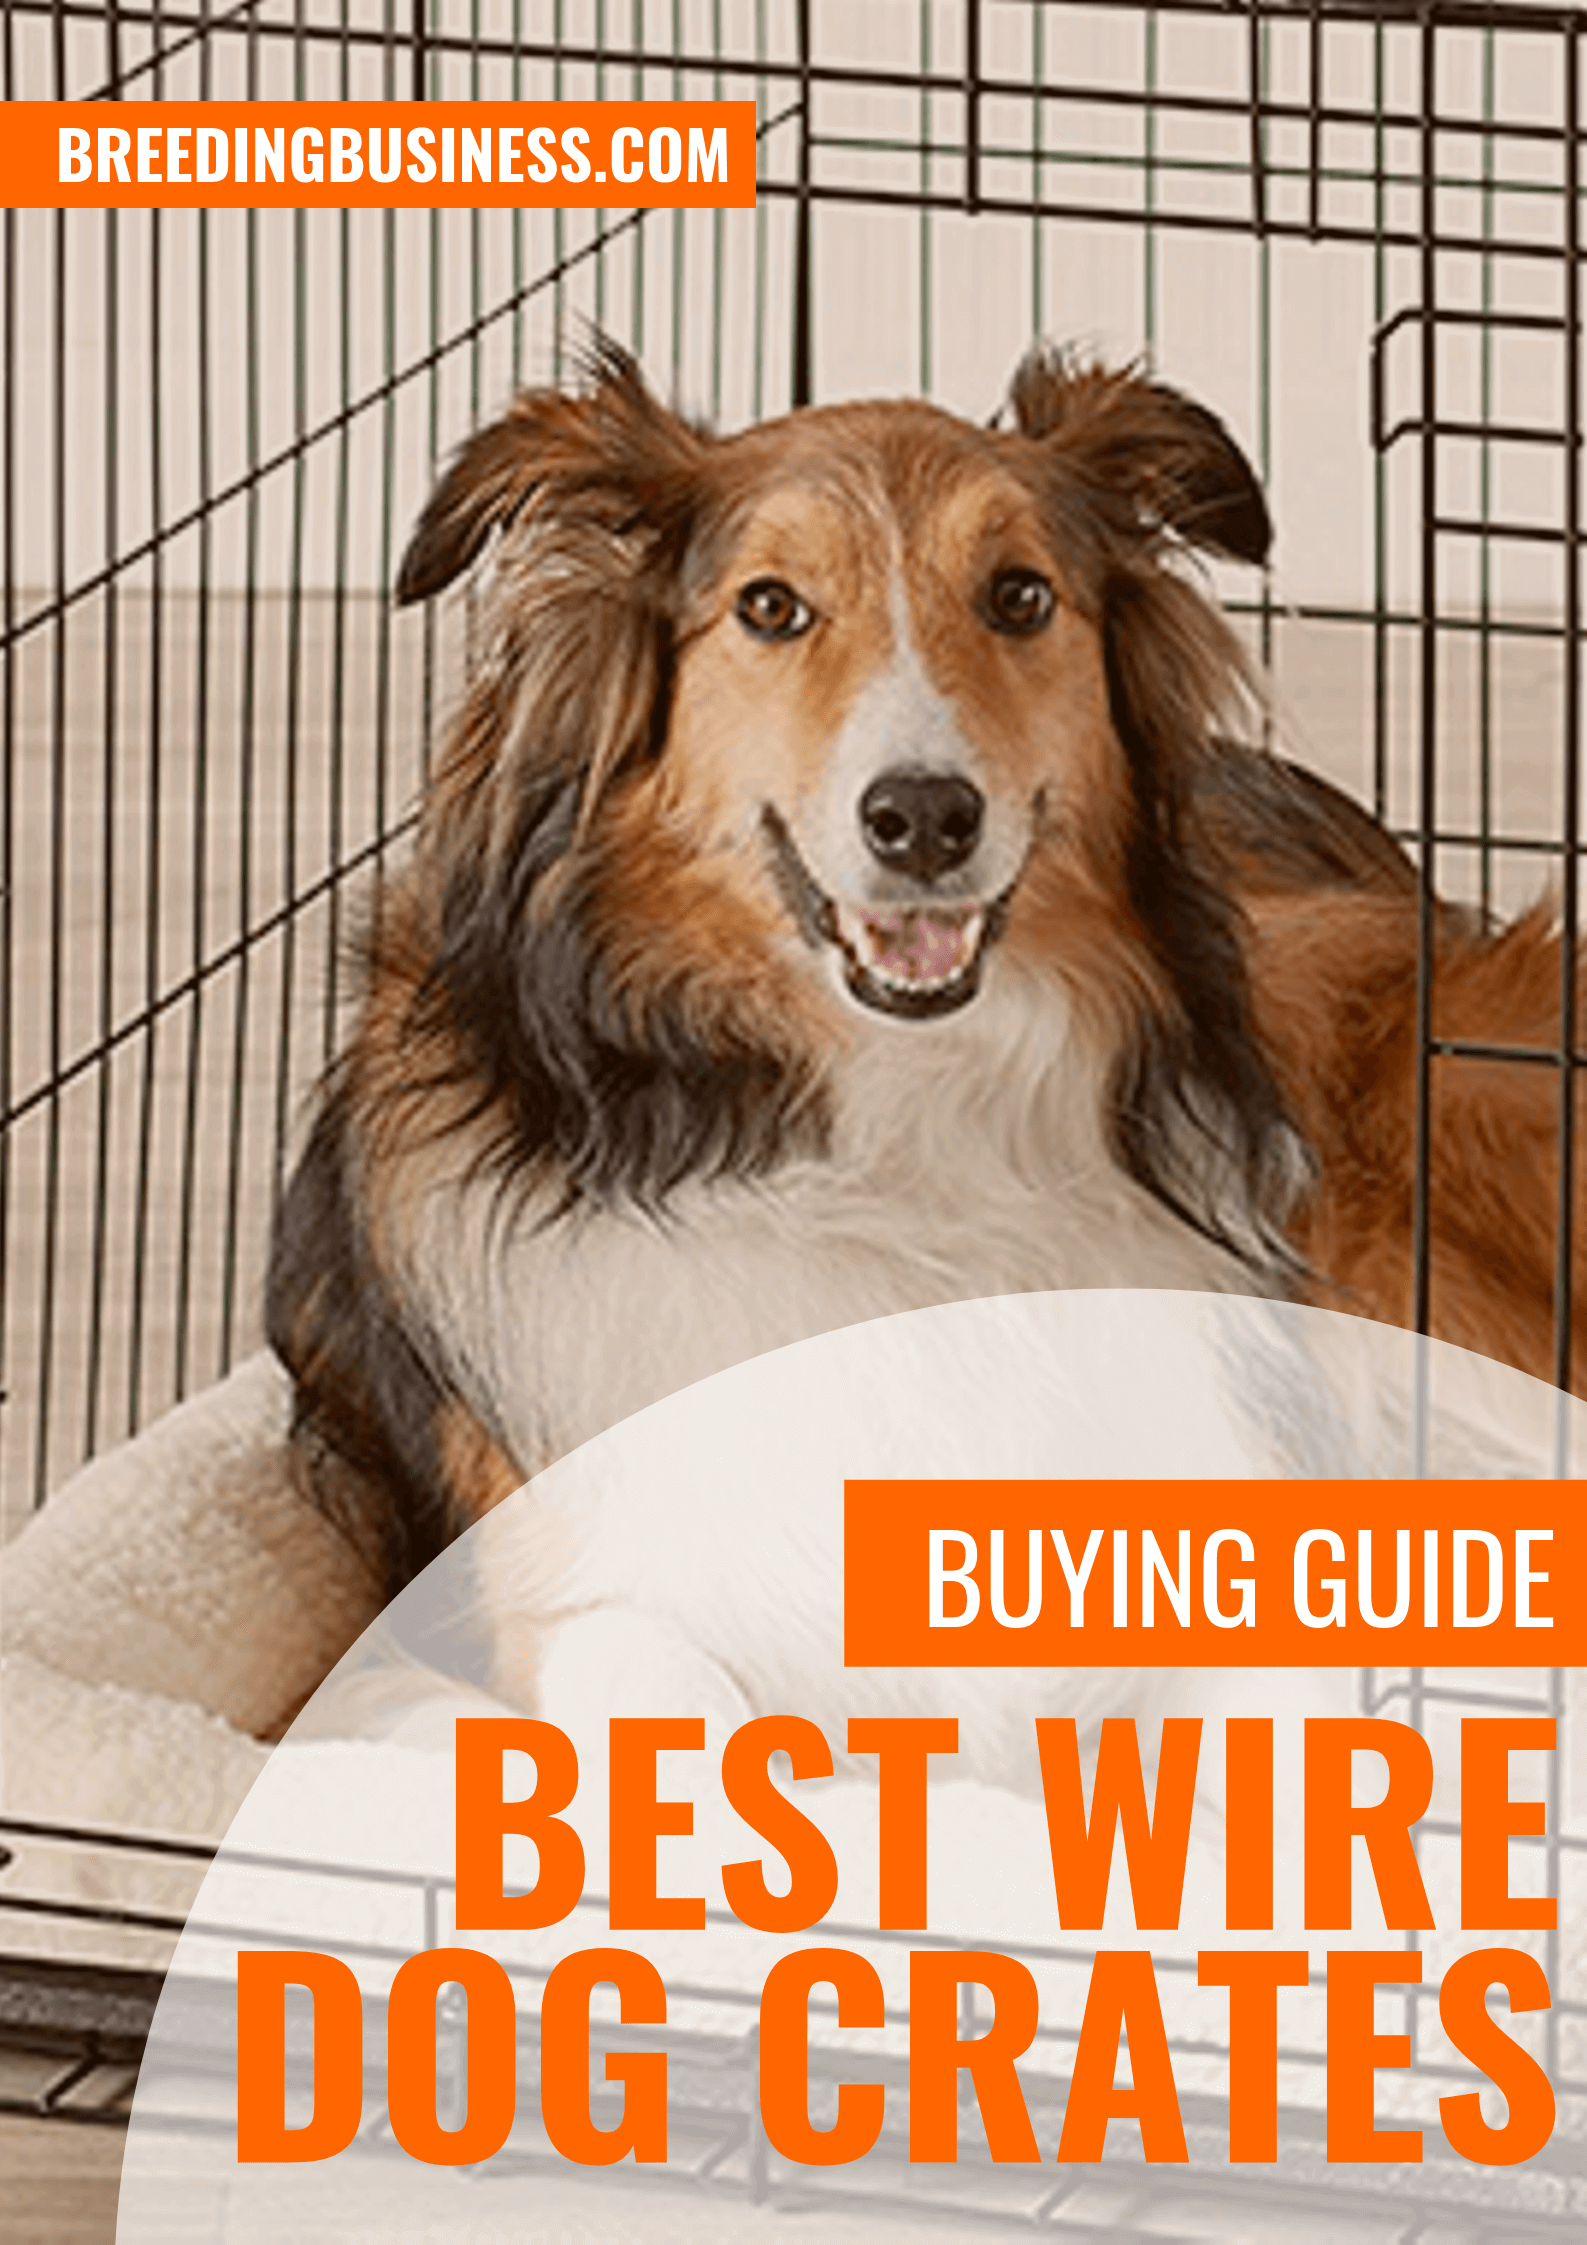 Buying Guide: metal and wire dog crates